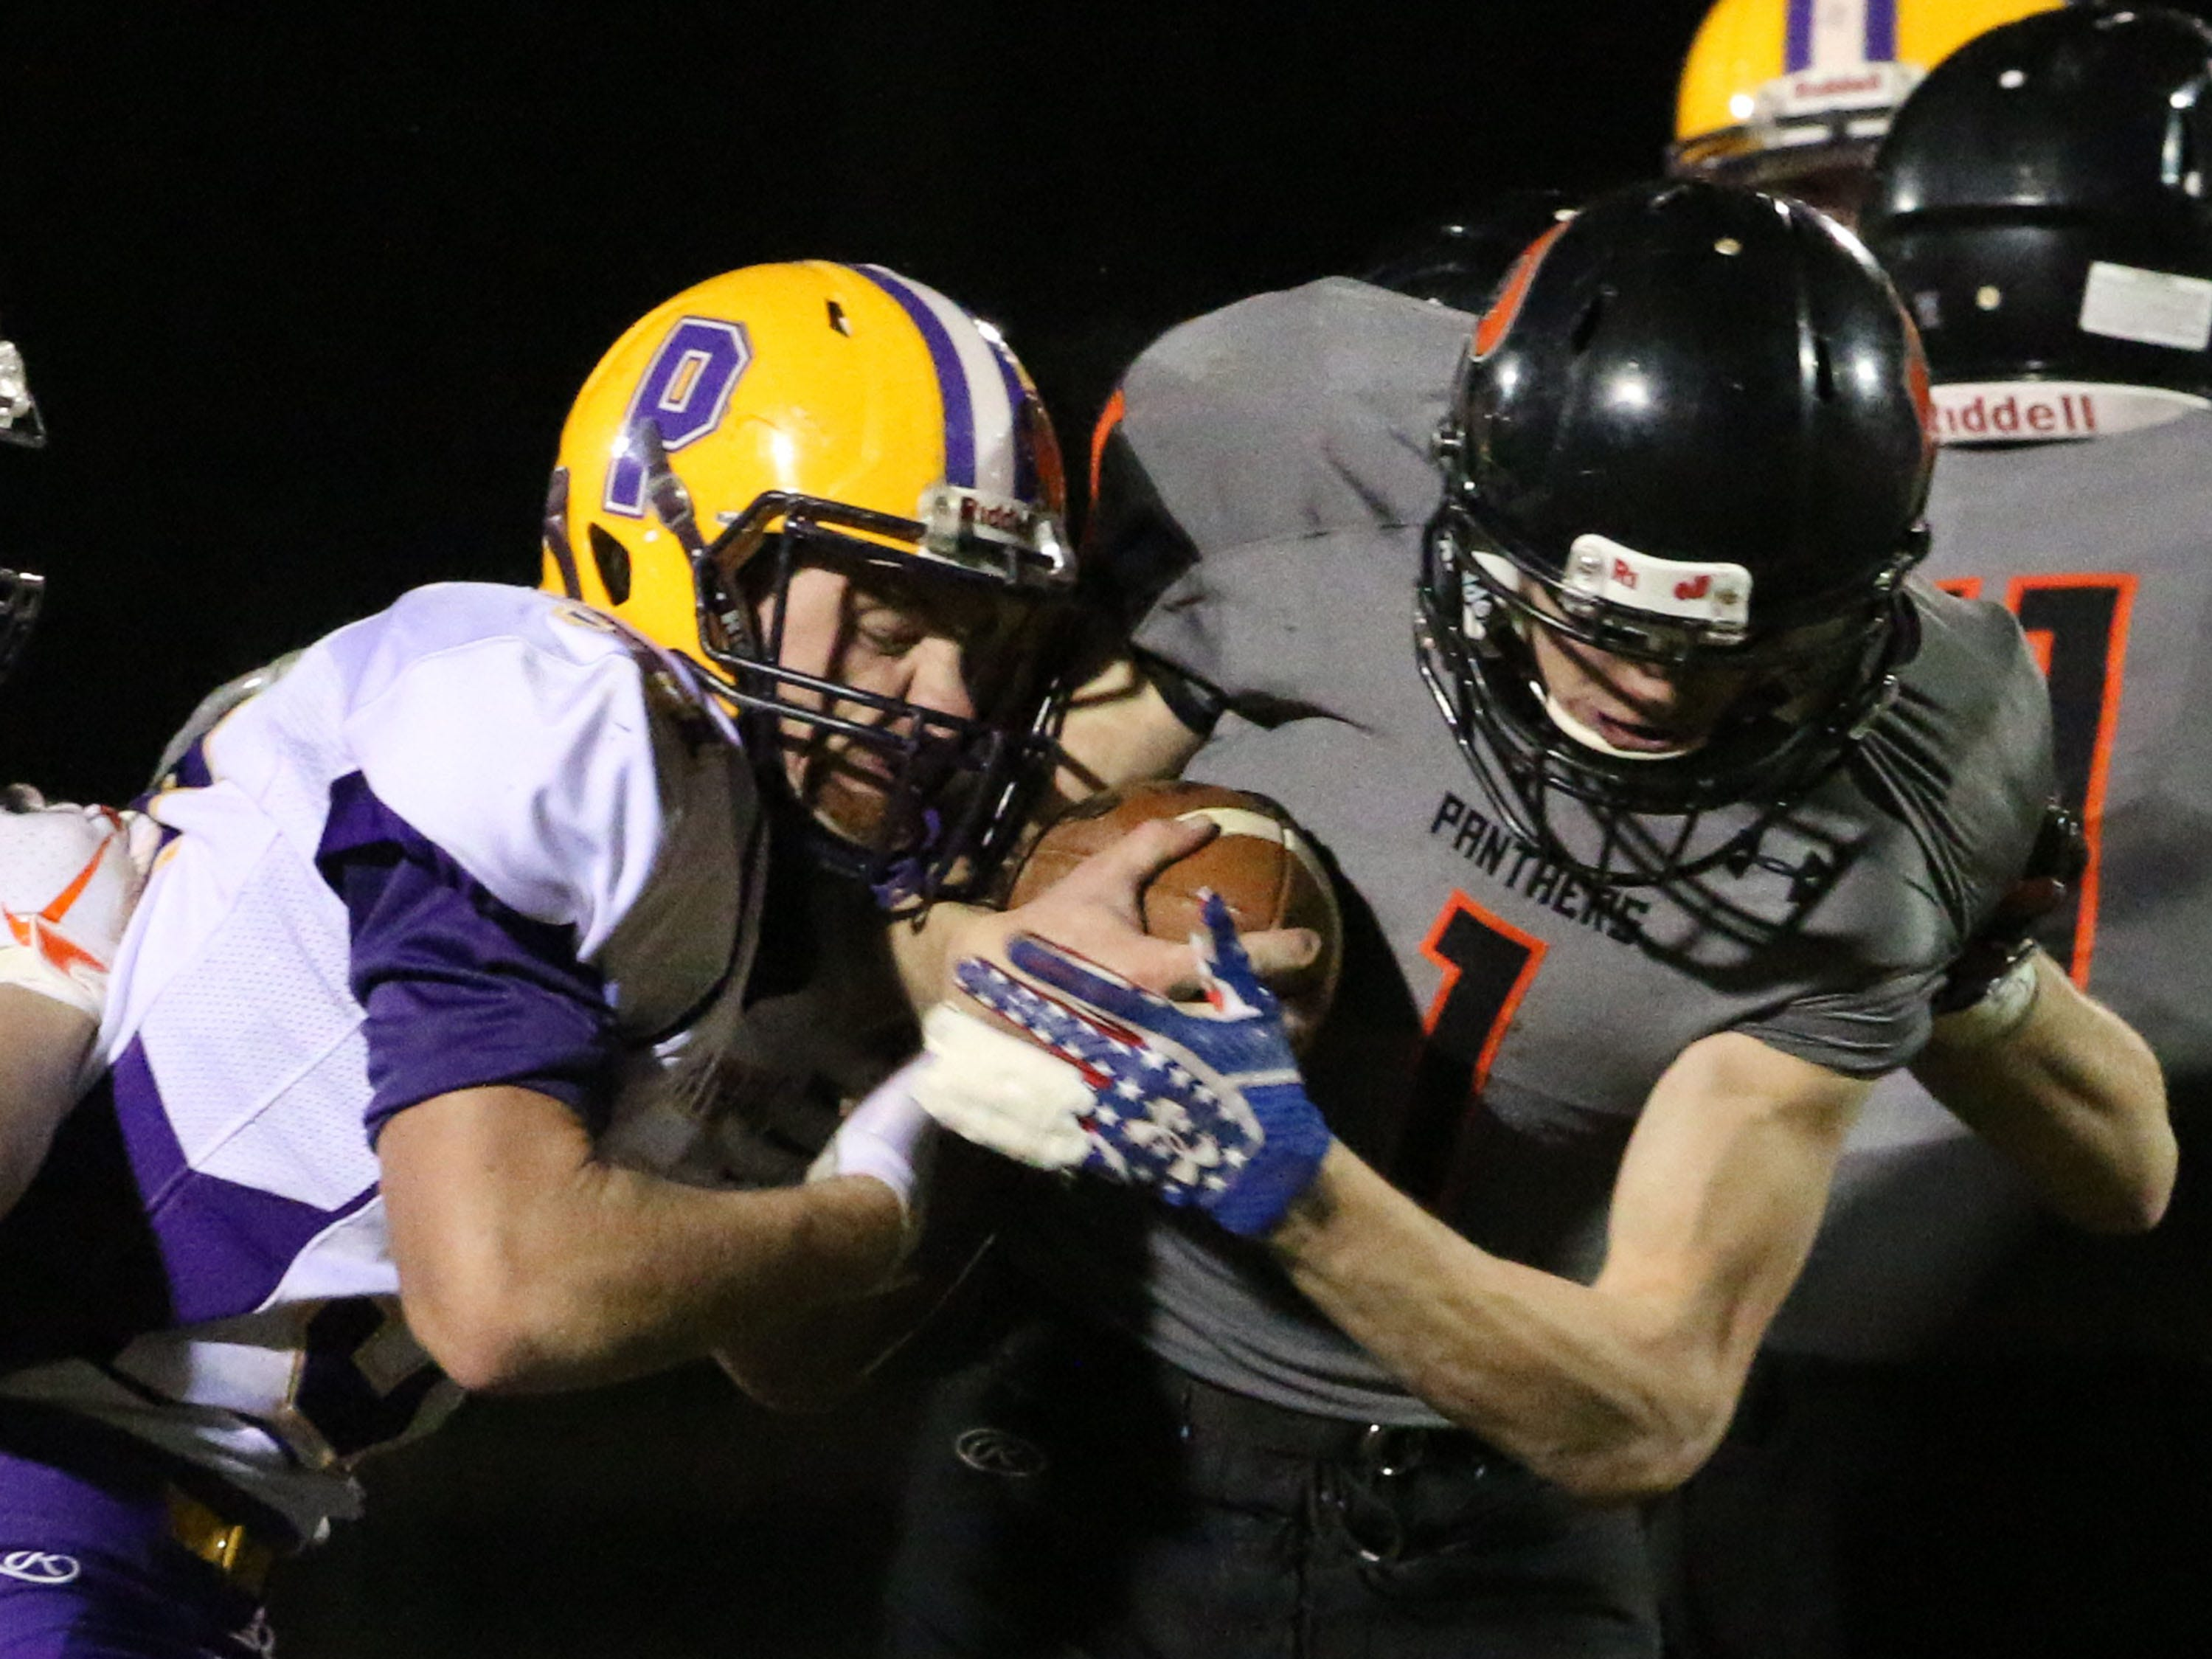 Reedsville's Carson Schanilec (1) tightly grips the ball against Pittsville, Friday, November 2, 2018, in Reedsville, Wis.